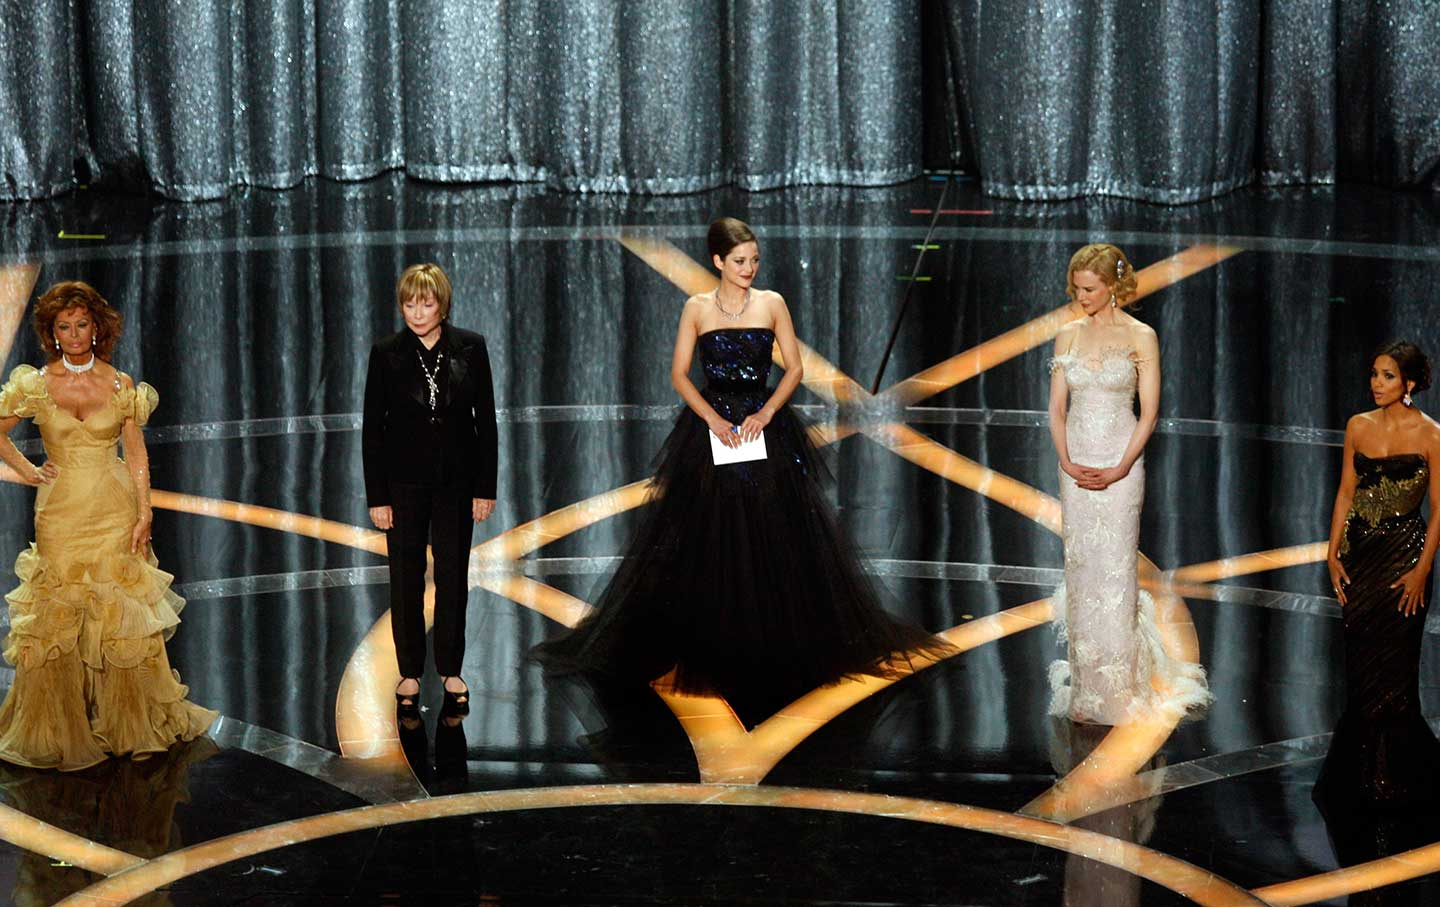 Actresses at the Academy Awards